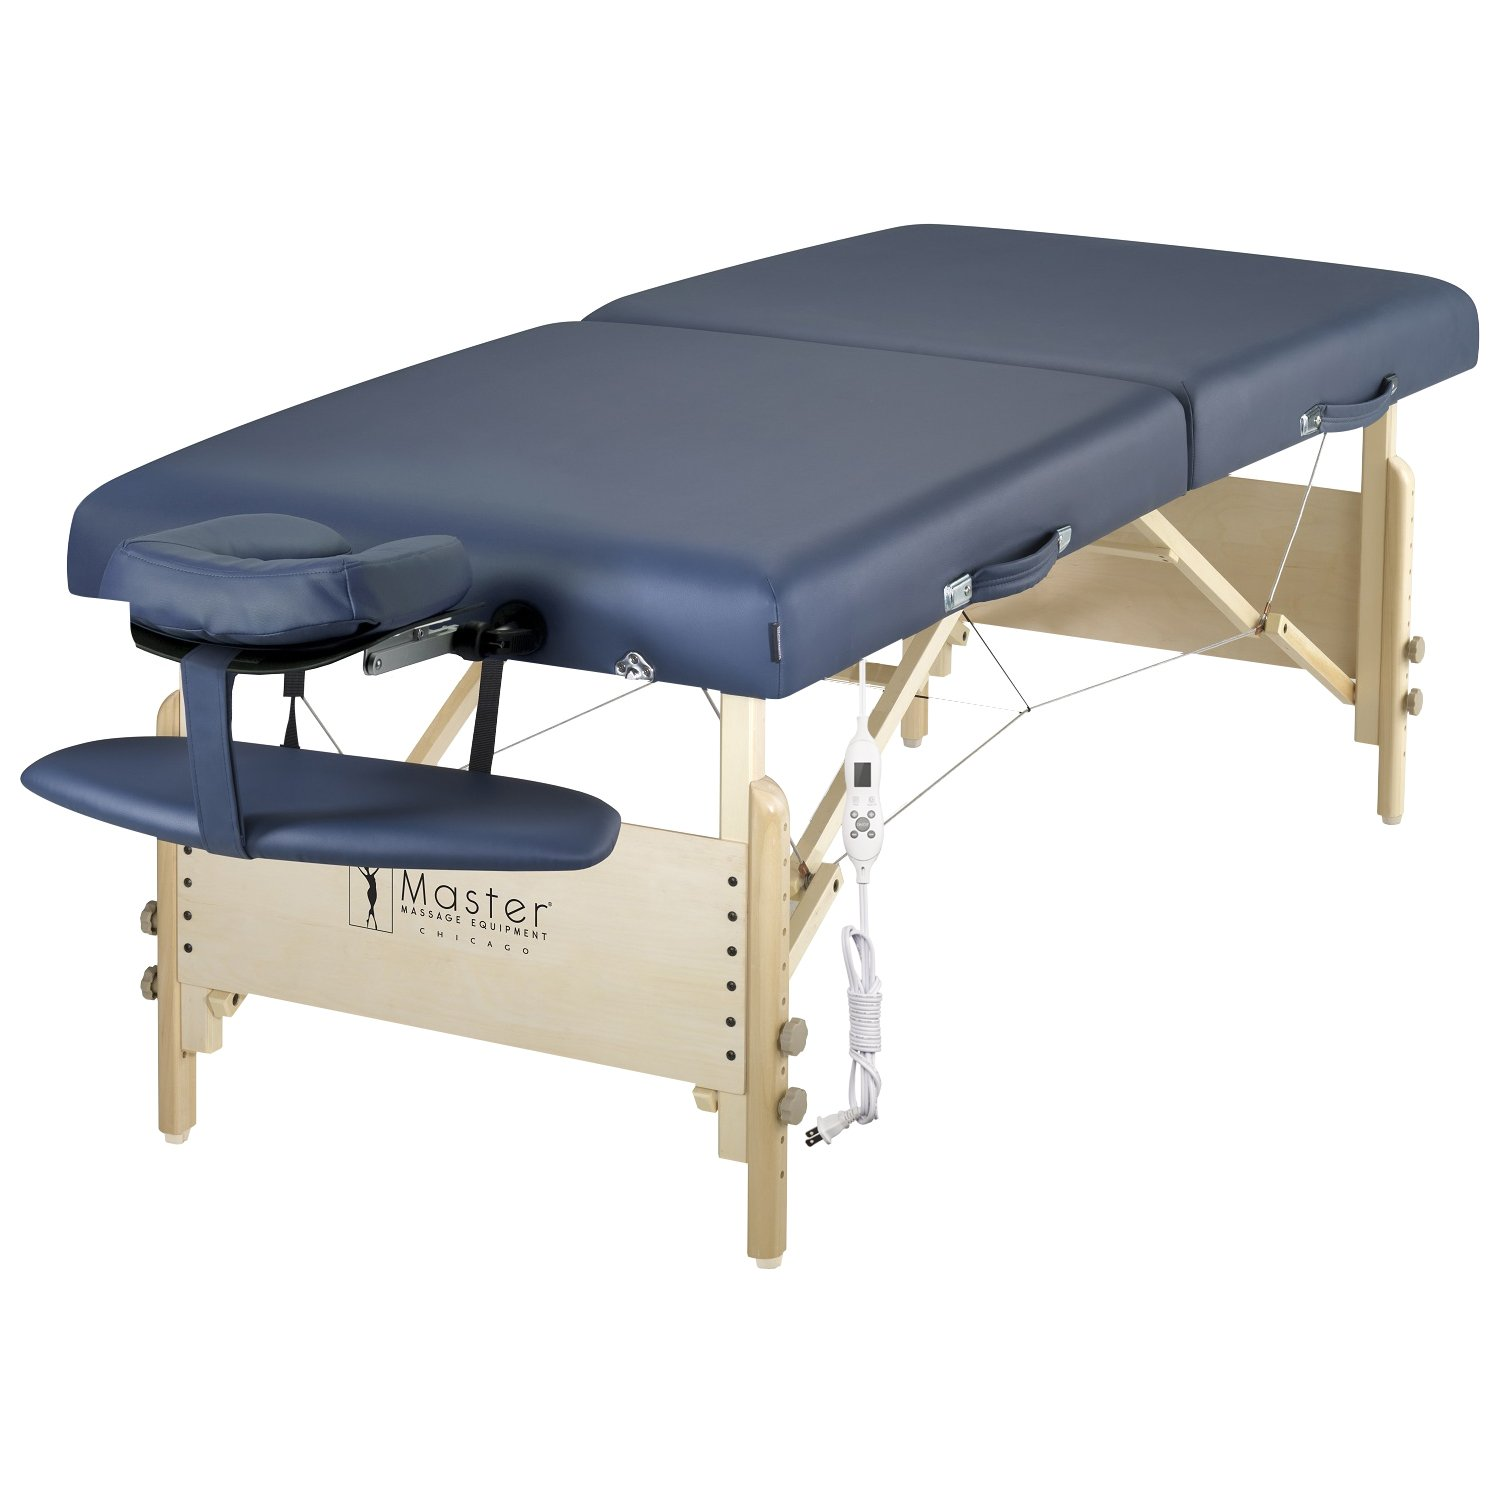 ca massage more pdp master reviews table balboa portable wayfair